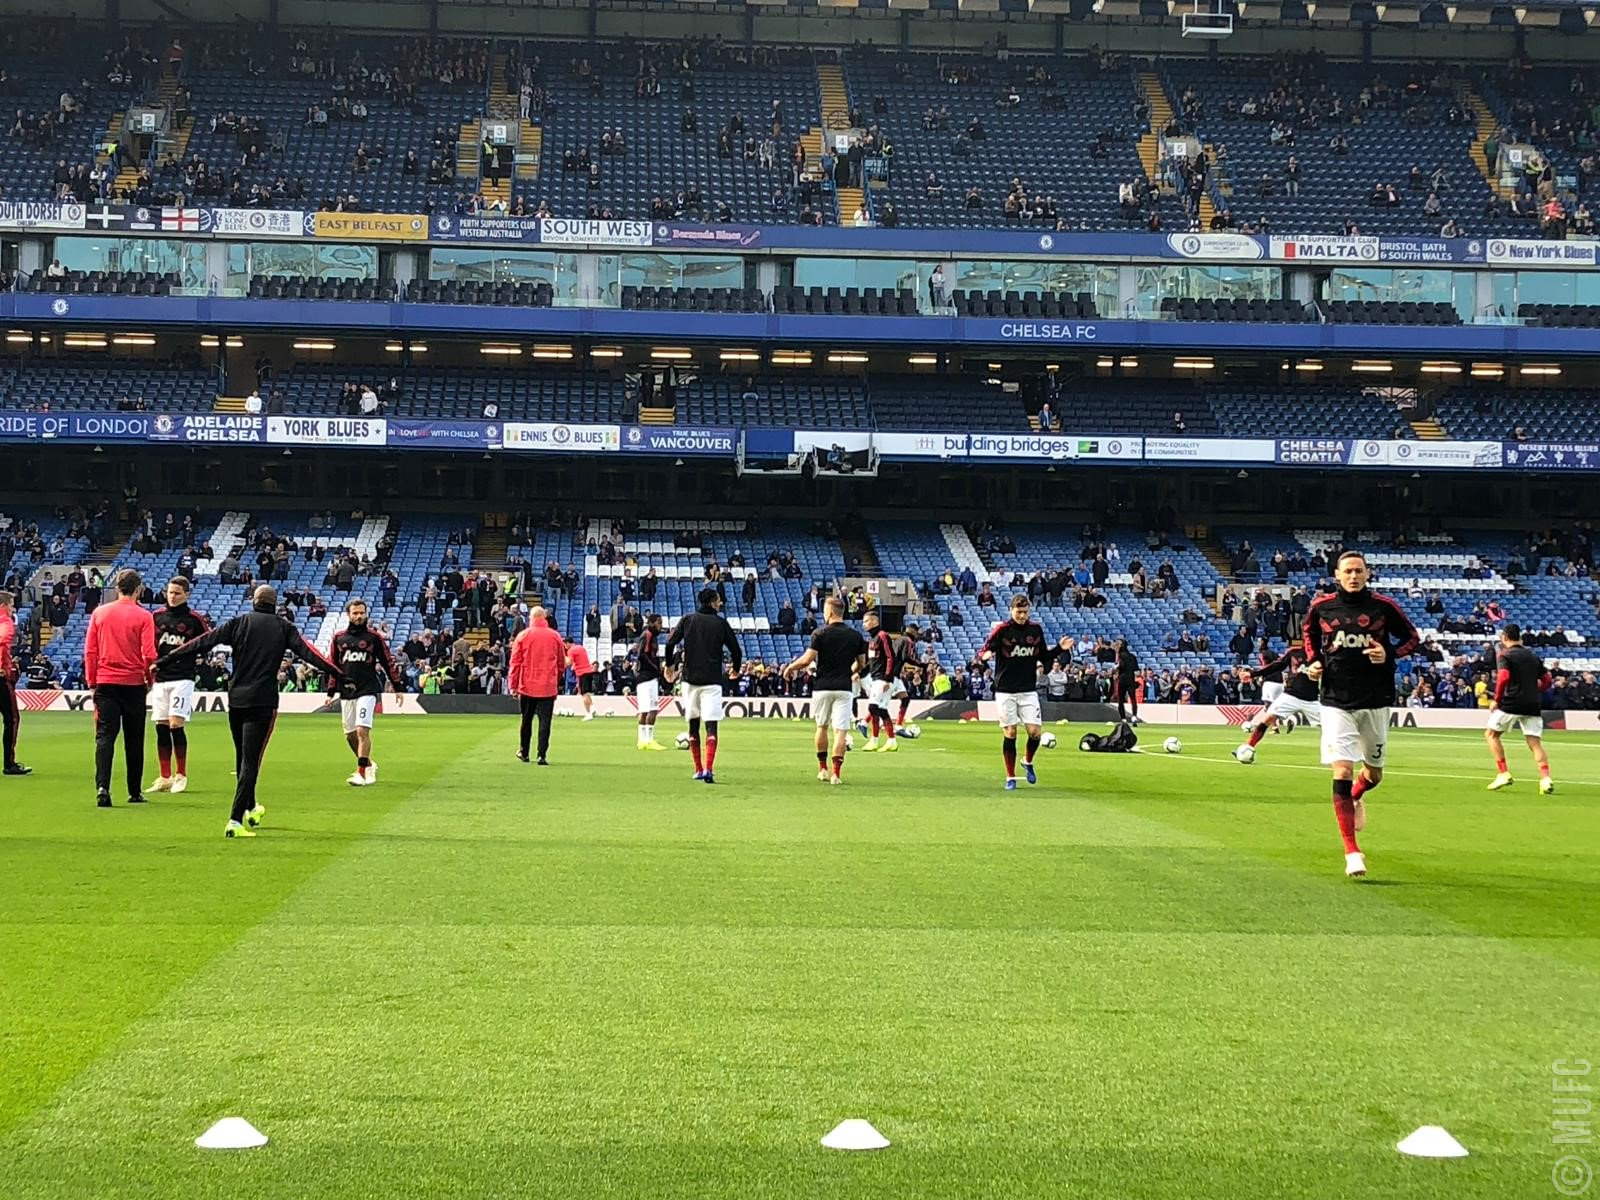 �� Touchline views as #MUFC get warmed up for #CHEMUN. https://t.co/Ib2vtdYI9n